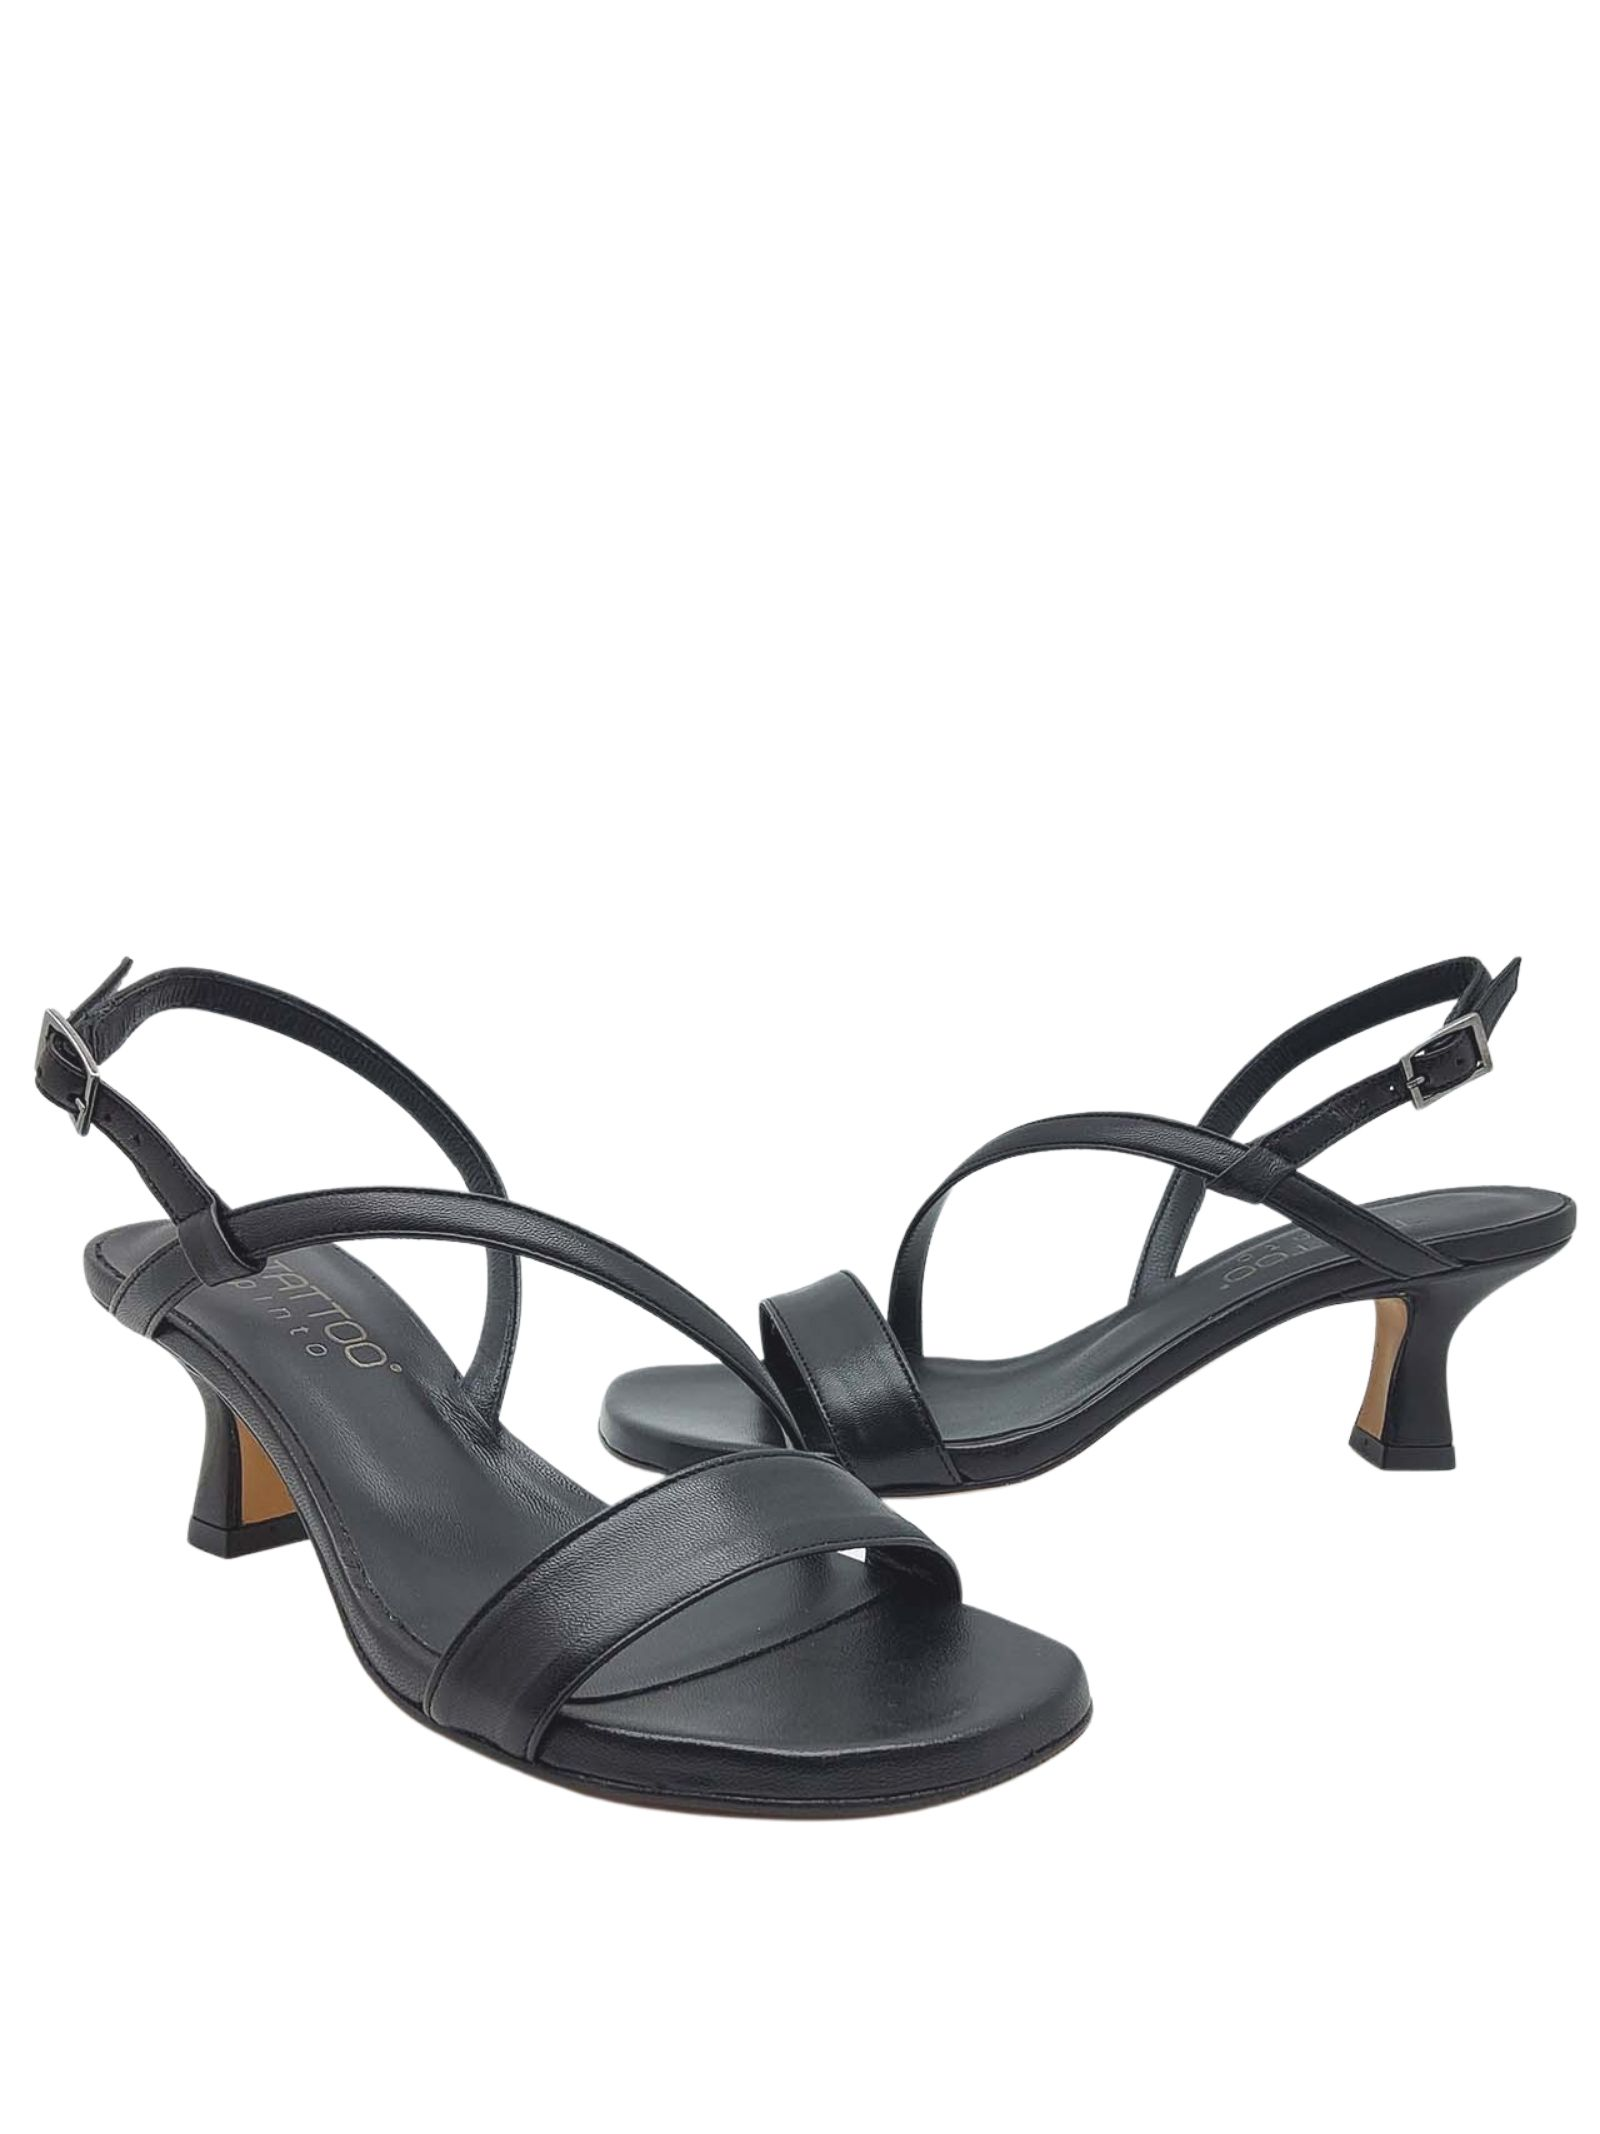 Women's Shoes Black Leather Sandals with Low Heel and Thin Straps Tattoo   Sandals   5011001